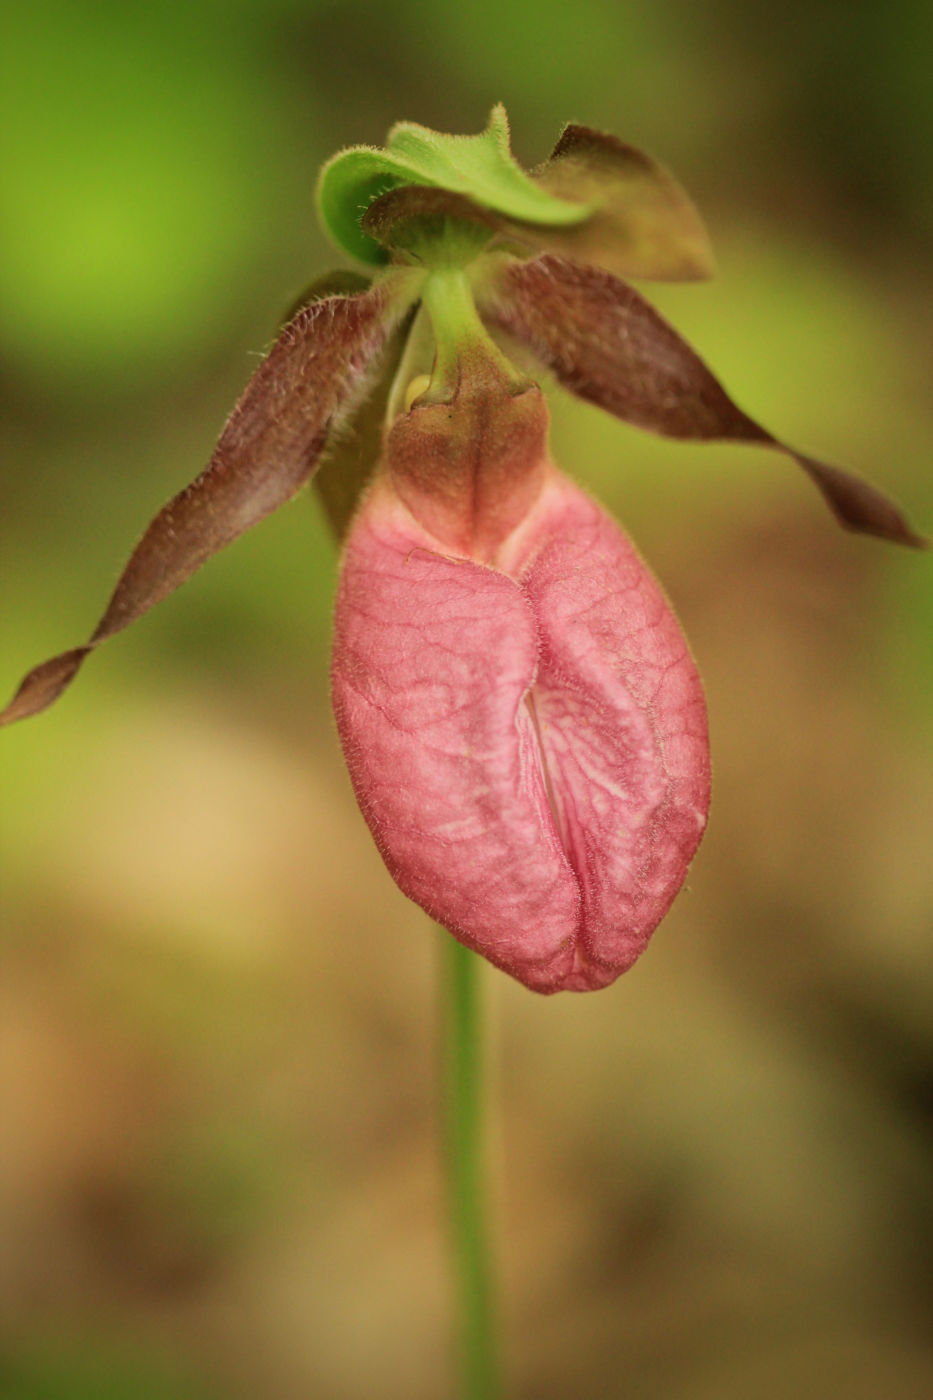 Pink lady's slipper (Cypripedium acaule) photo